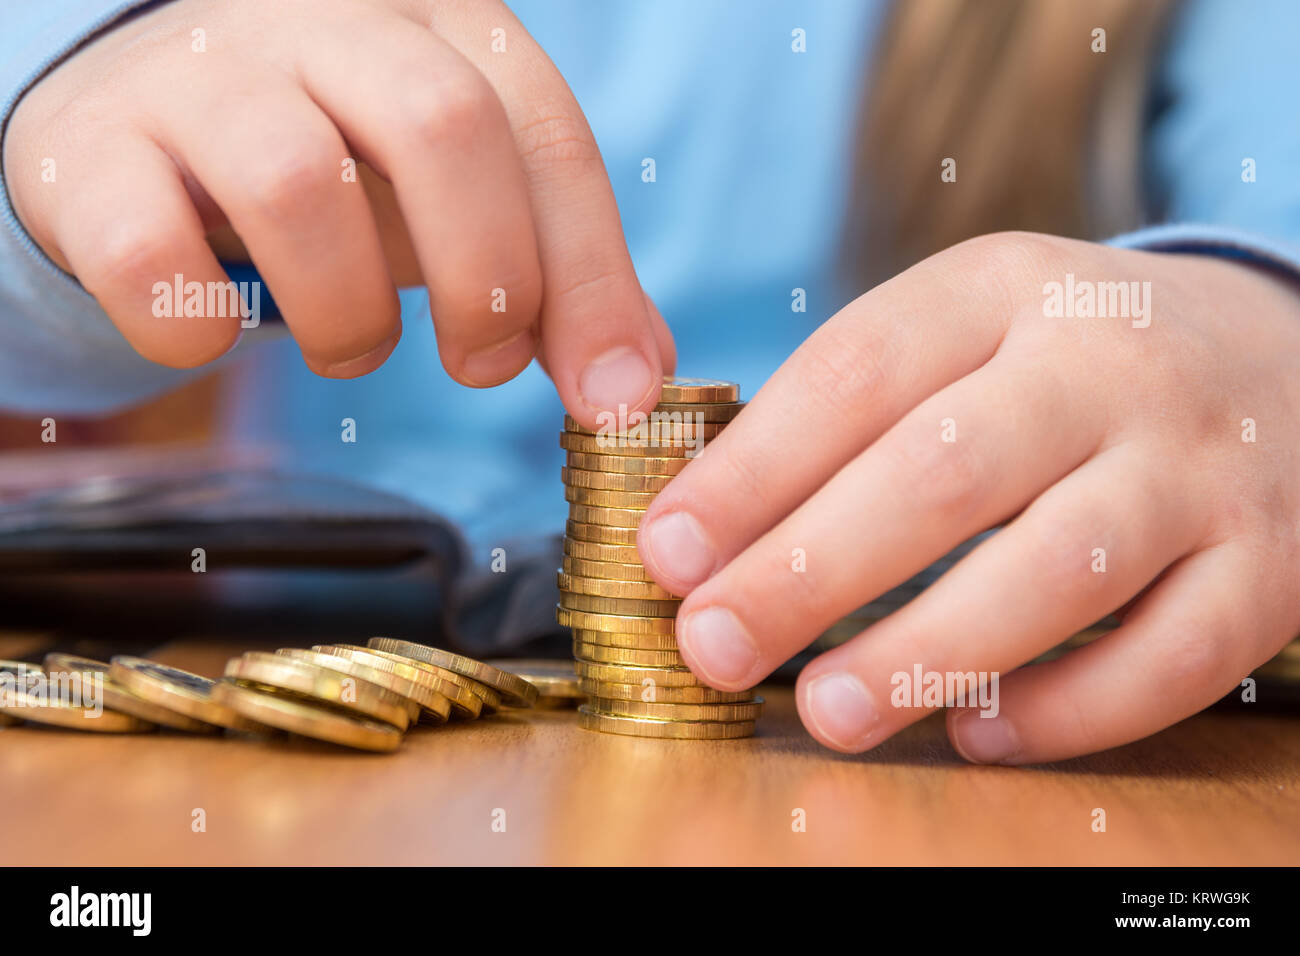 Child collects a stack of golden coins, close-up - Stock Image